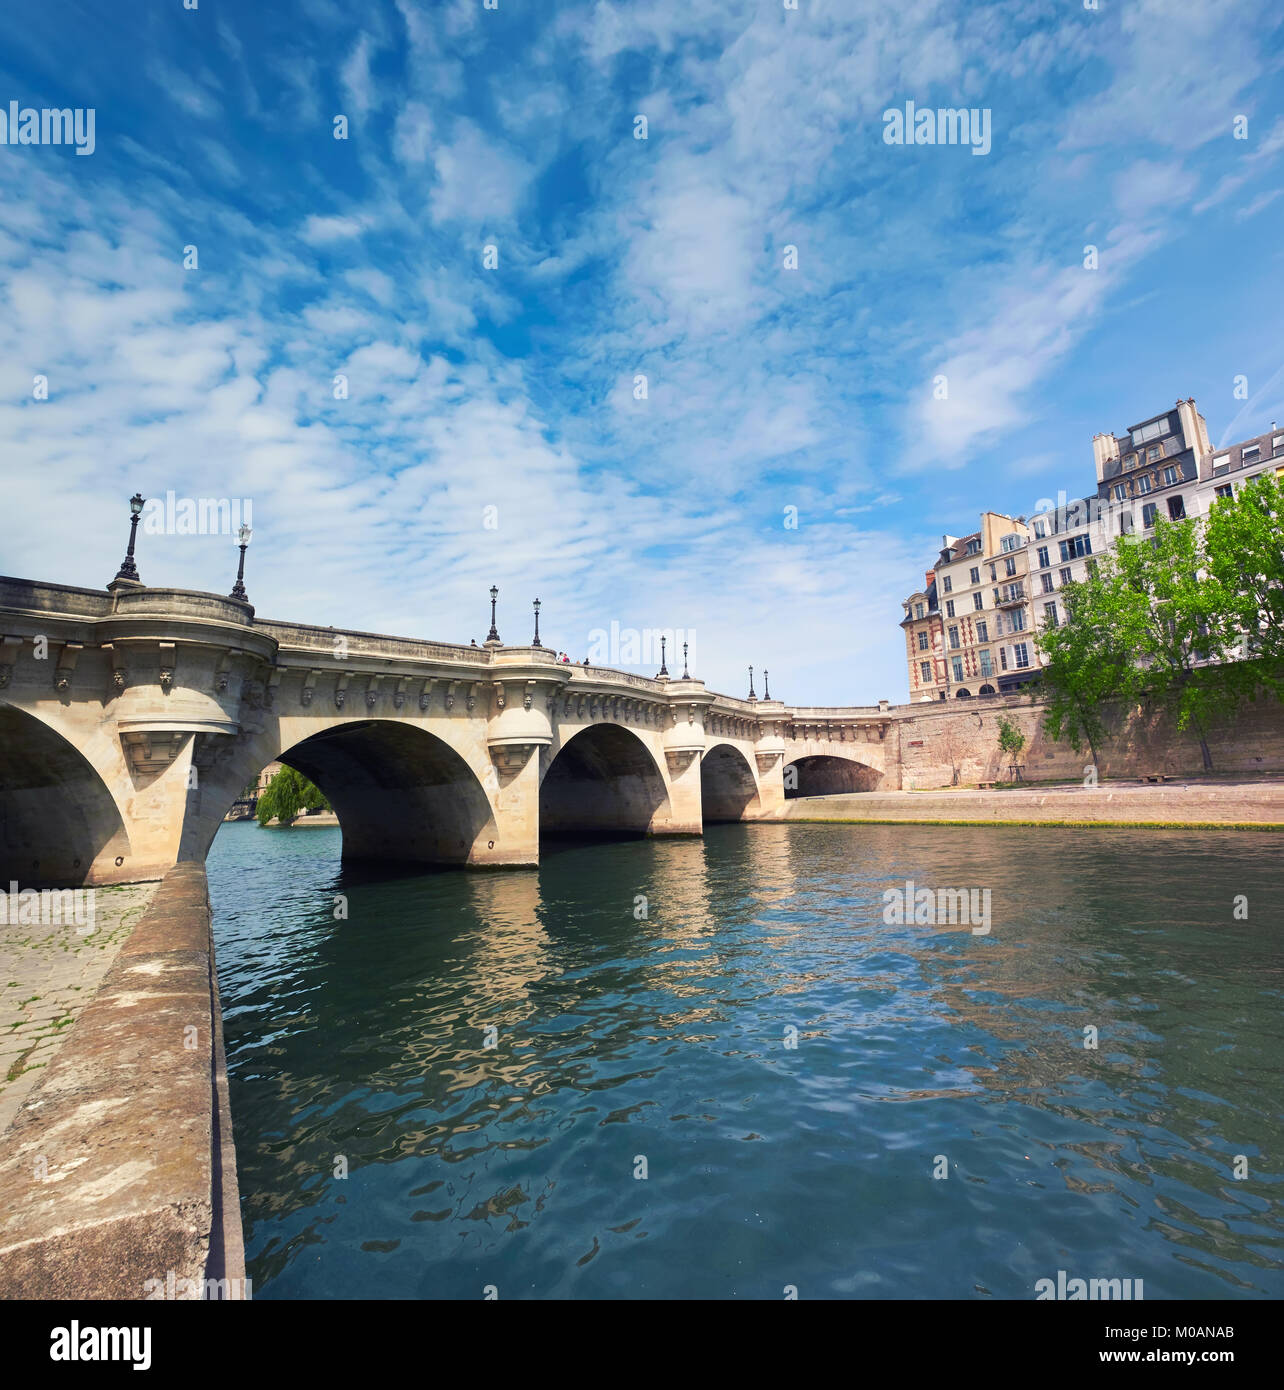 Pont Neuf bridge on Seine river in Paris, France, on a bright sunny day, panoramic image. - Stock Image